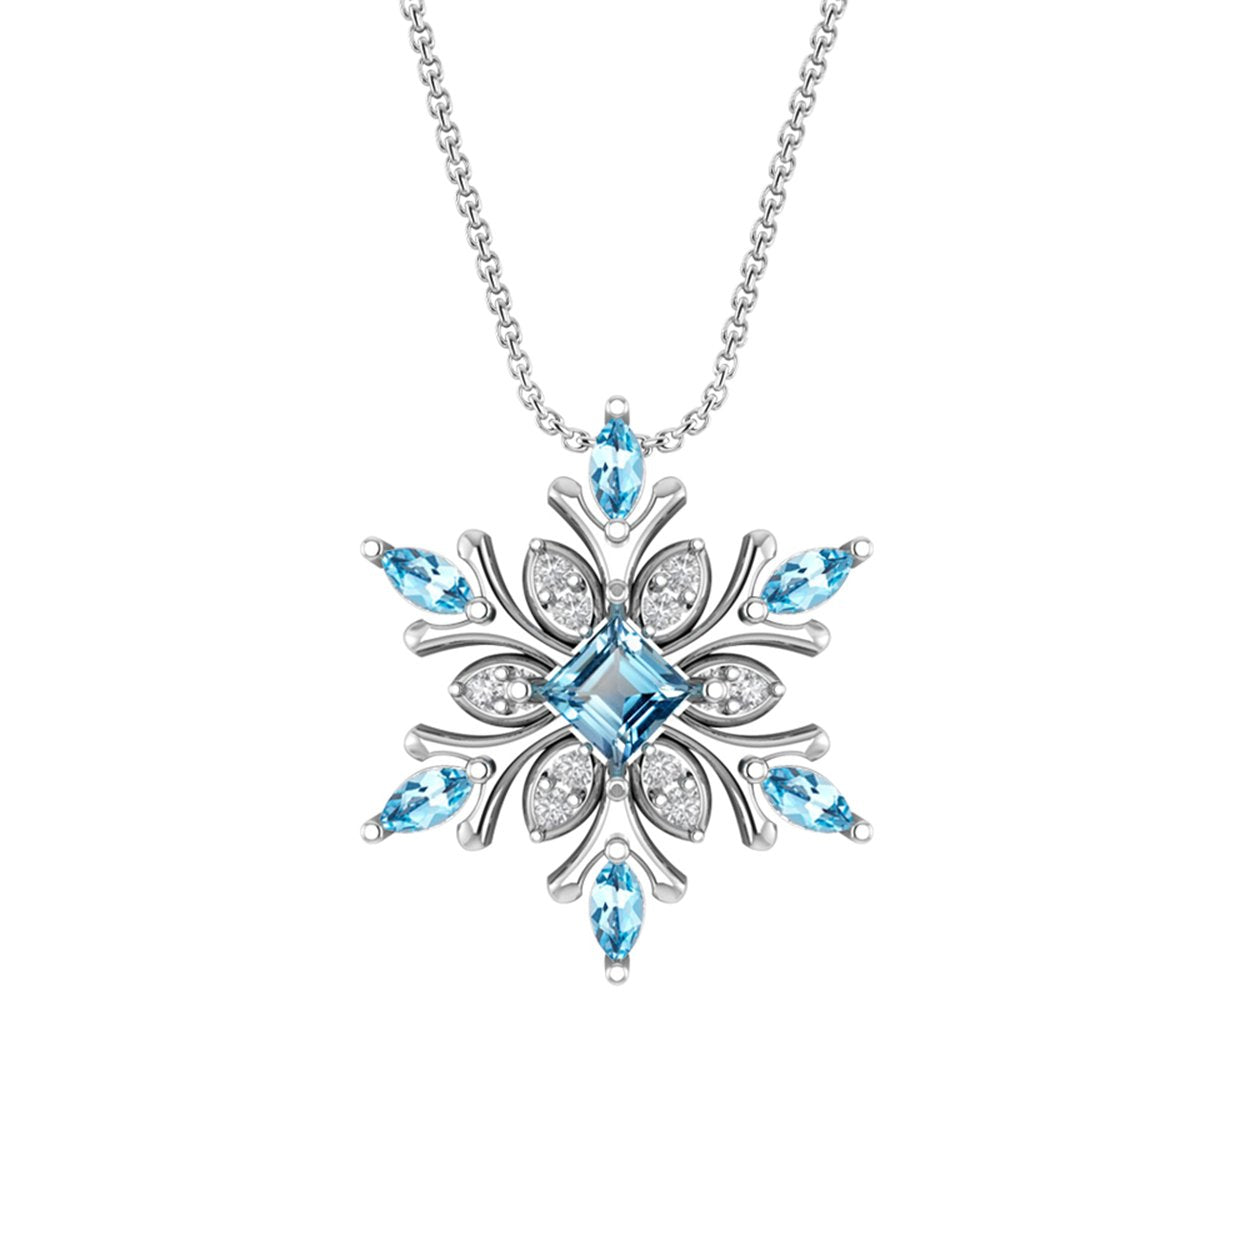 Sterling Silver Snowflake Necklace with Swiss Blue and White Topaz